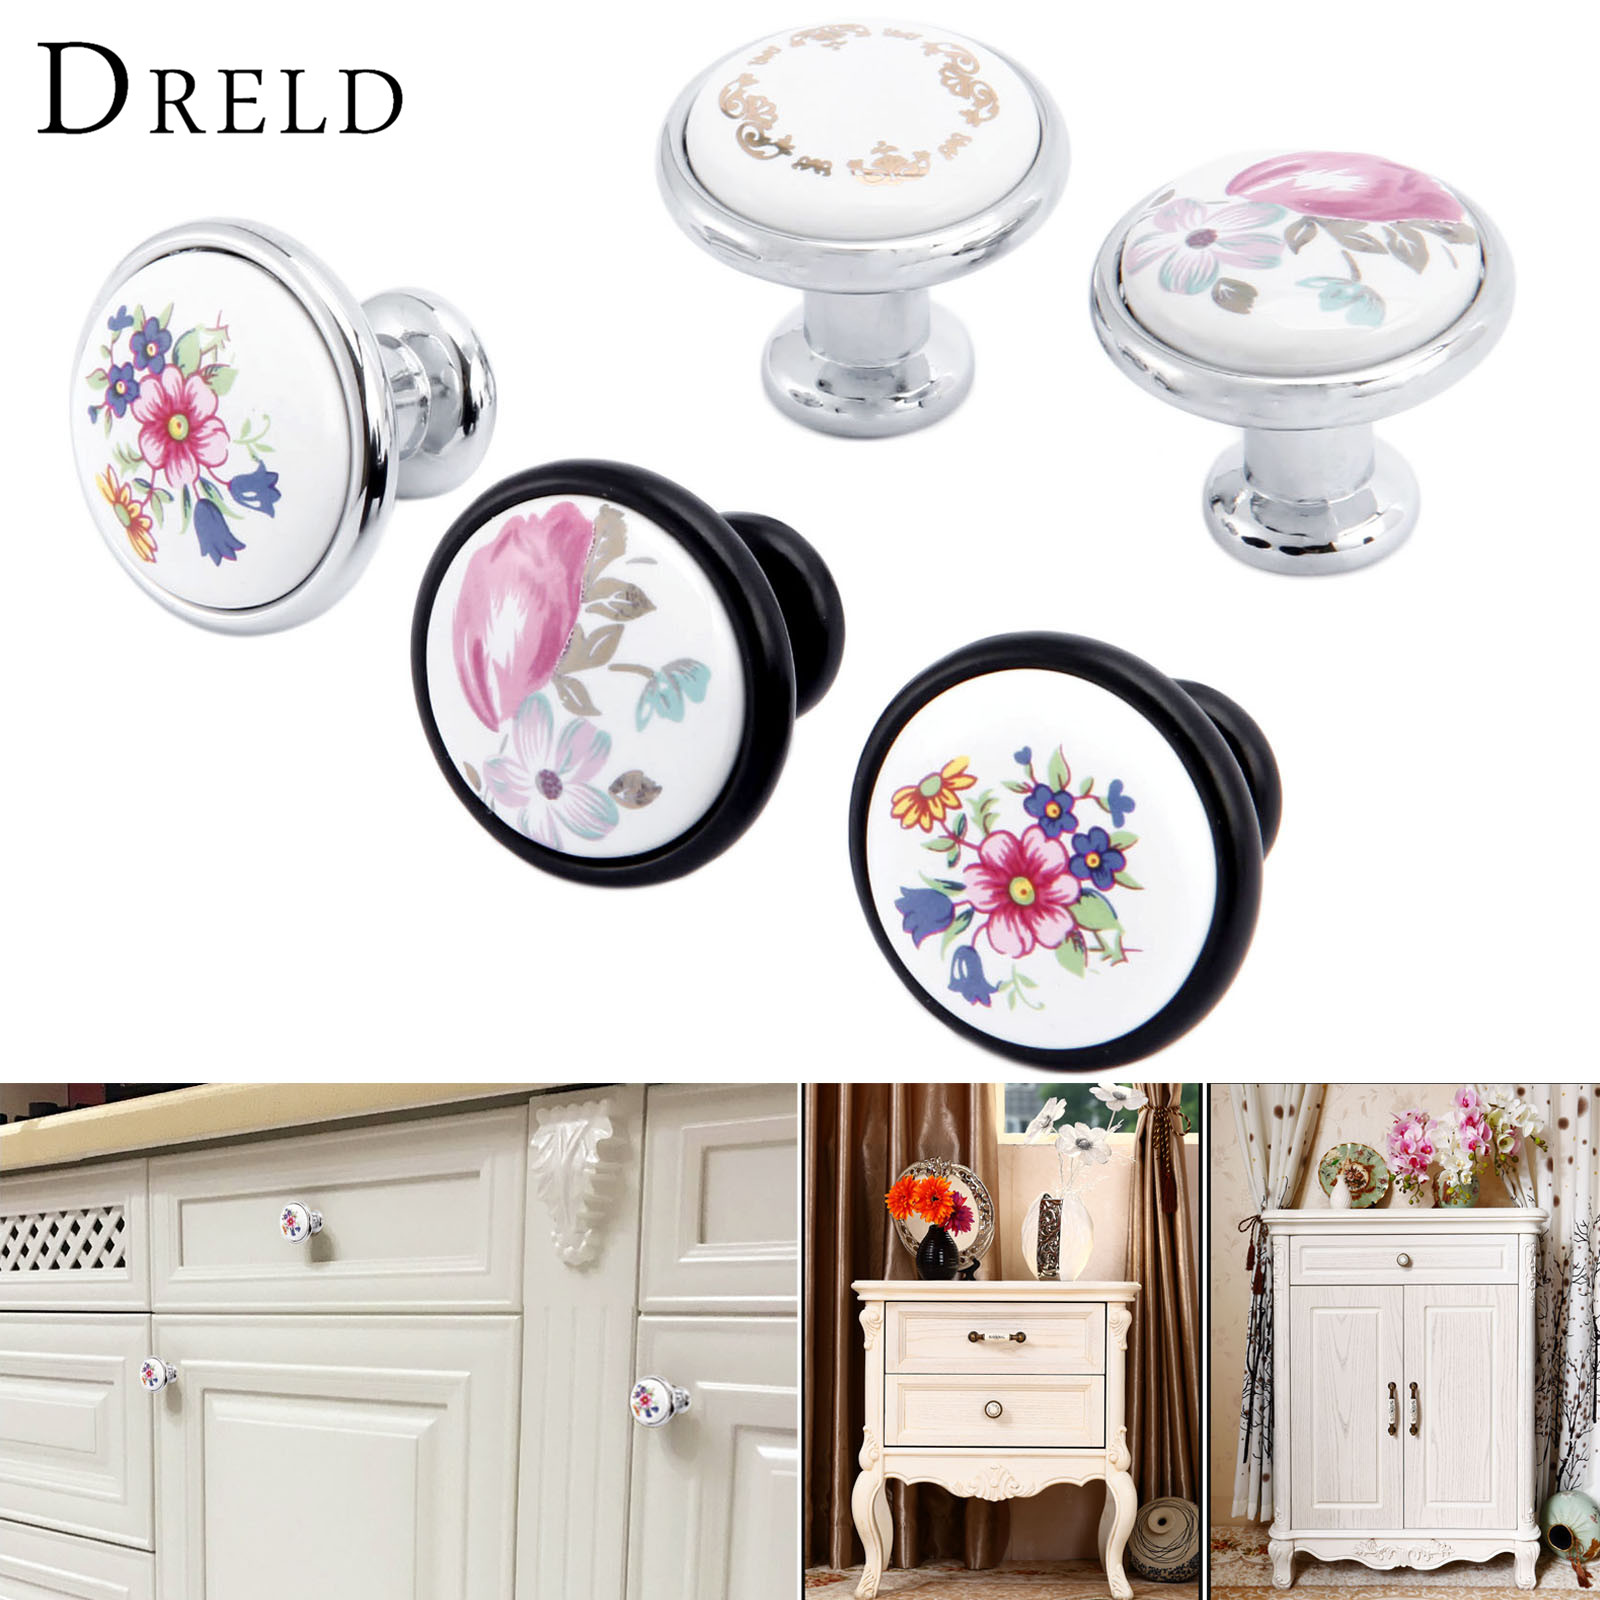 DRELD Furniture Handle Modern Cabinet Knobs and Handles Door Cupboard Drawer Pull Handle for Kitchen Bedroom Furniture Hardware 10 inch long cabinet handles and knobs drawer pull for furniture and cupboard simple wardrobe handle zinc alloy door handle